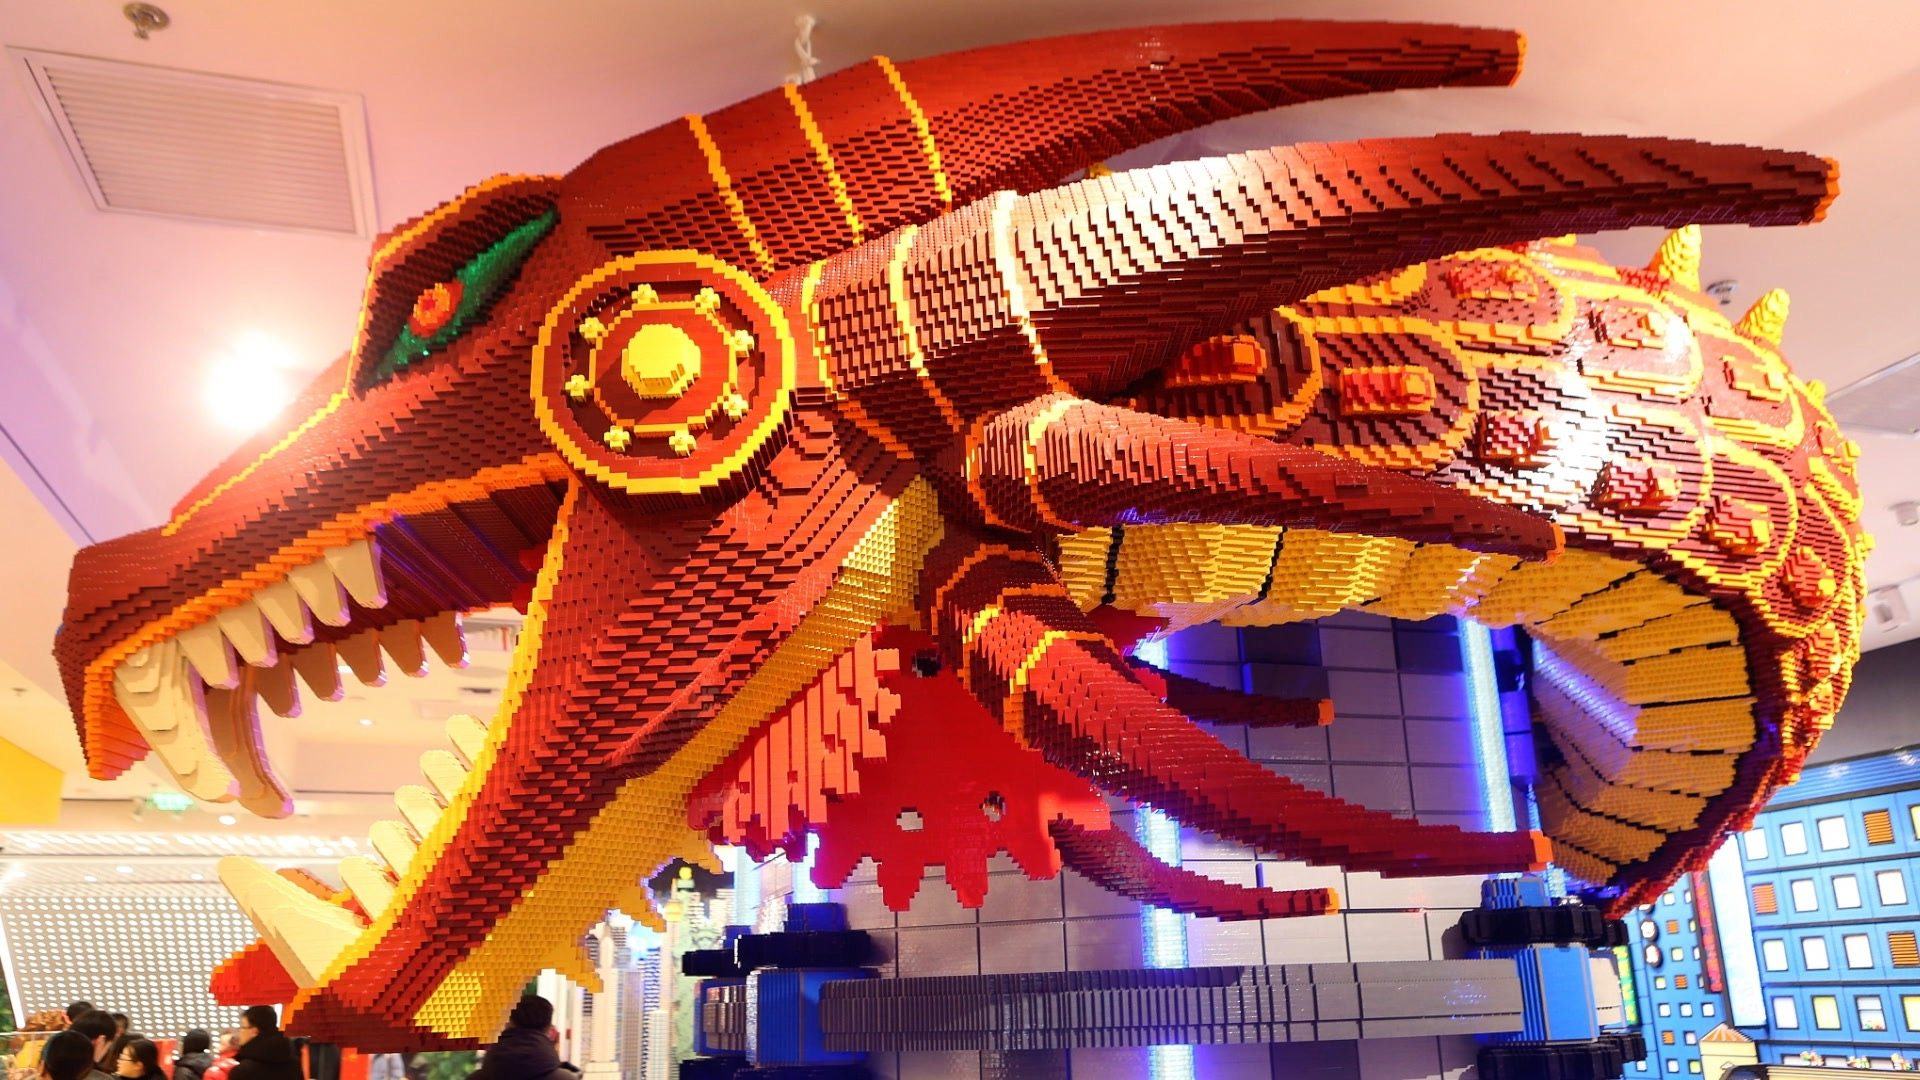 Meet the 'red dragon' in Shanghai Lego flagship store